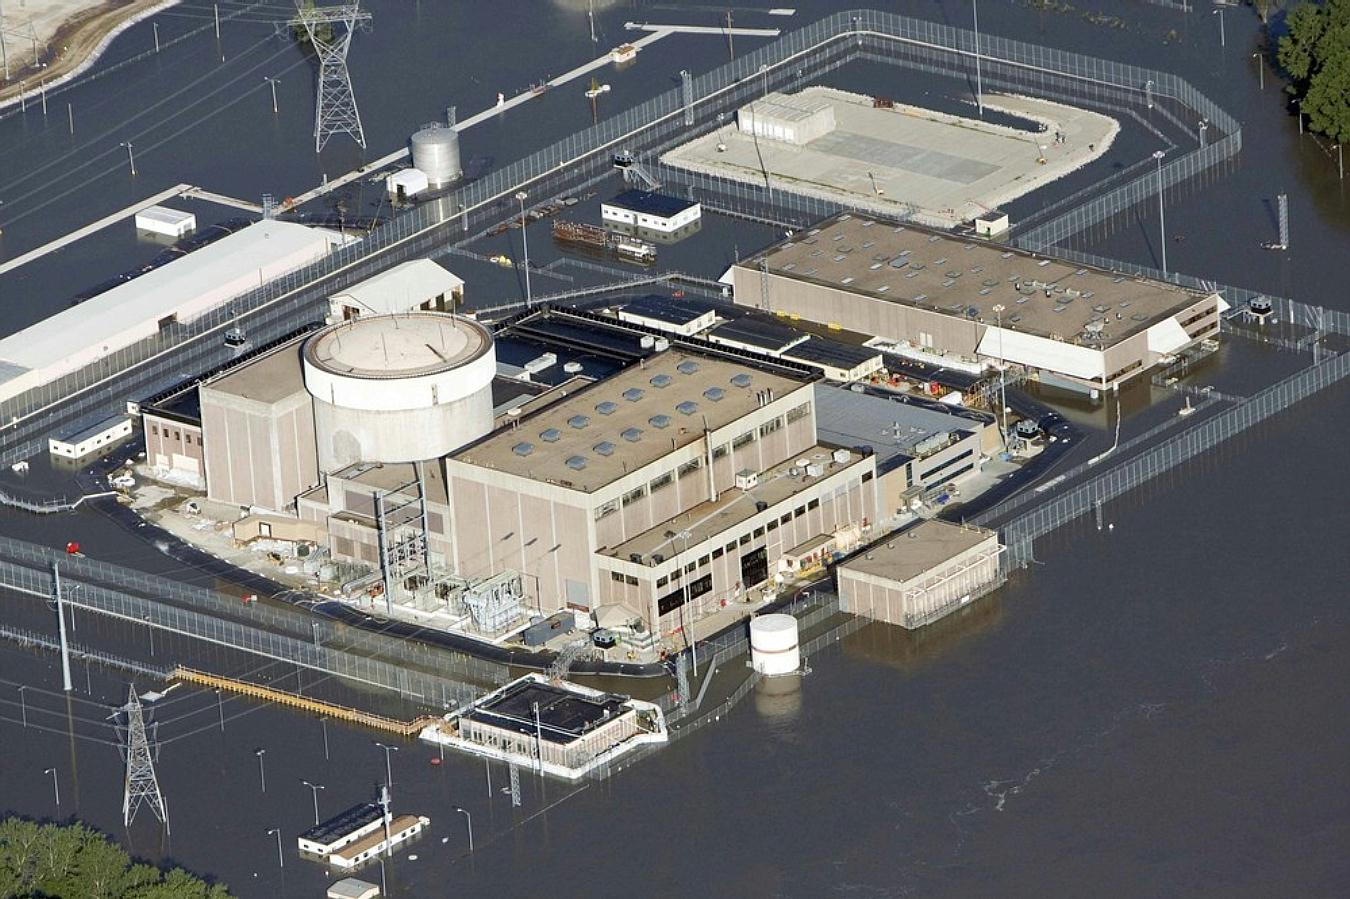 Fort Calhoun Nuclear Power Plant surrounded by floodwaters in 2011